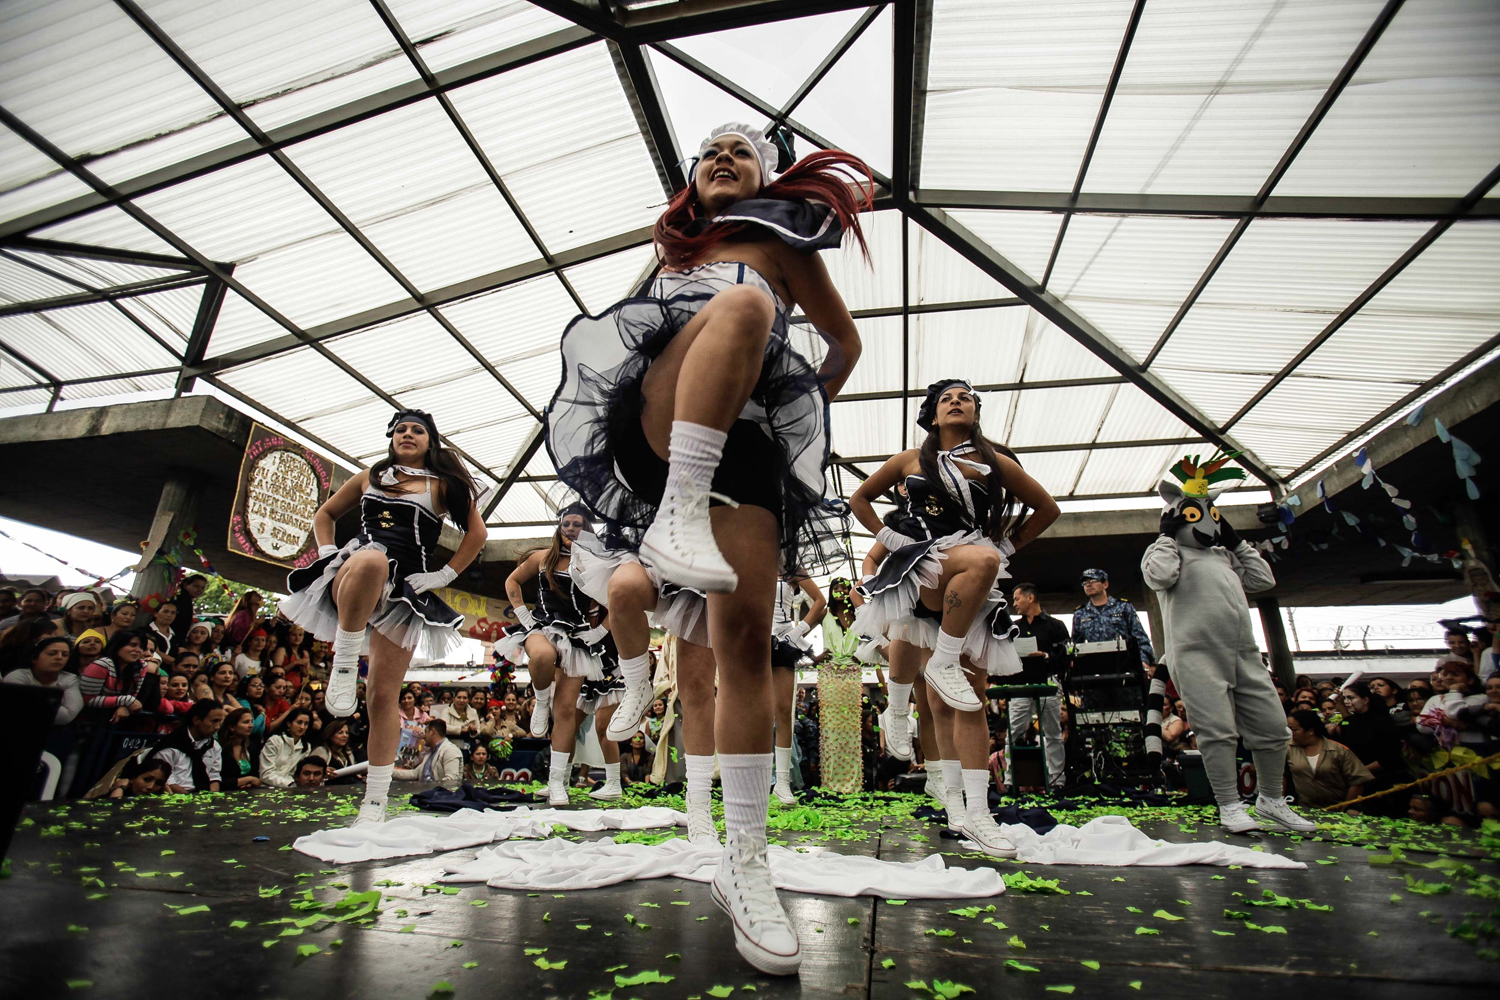 Sept. 26, 2013. Prisoners participate during the celebration of the Virgin of Mercy, in El Buen Pastor jail, in Bogota, Colombia.